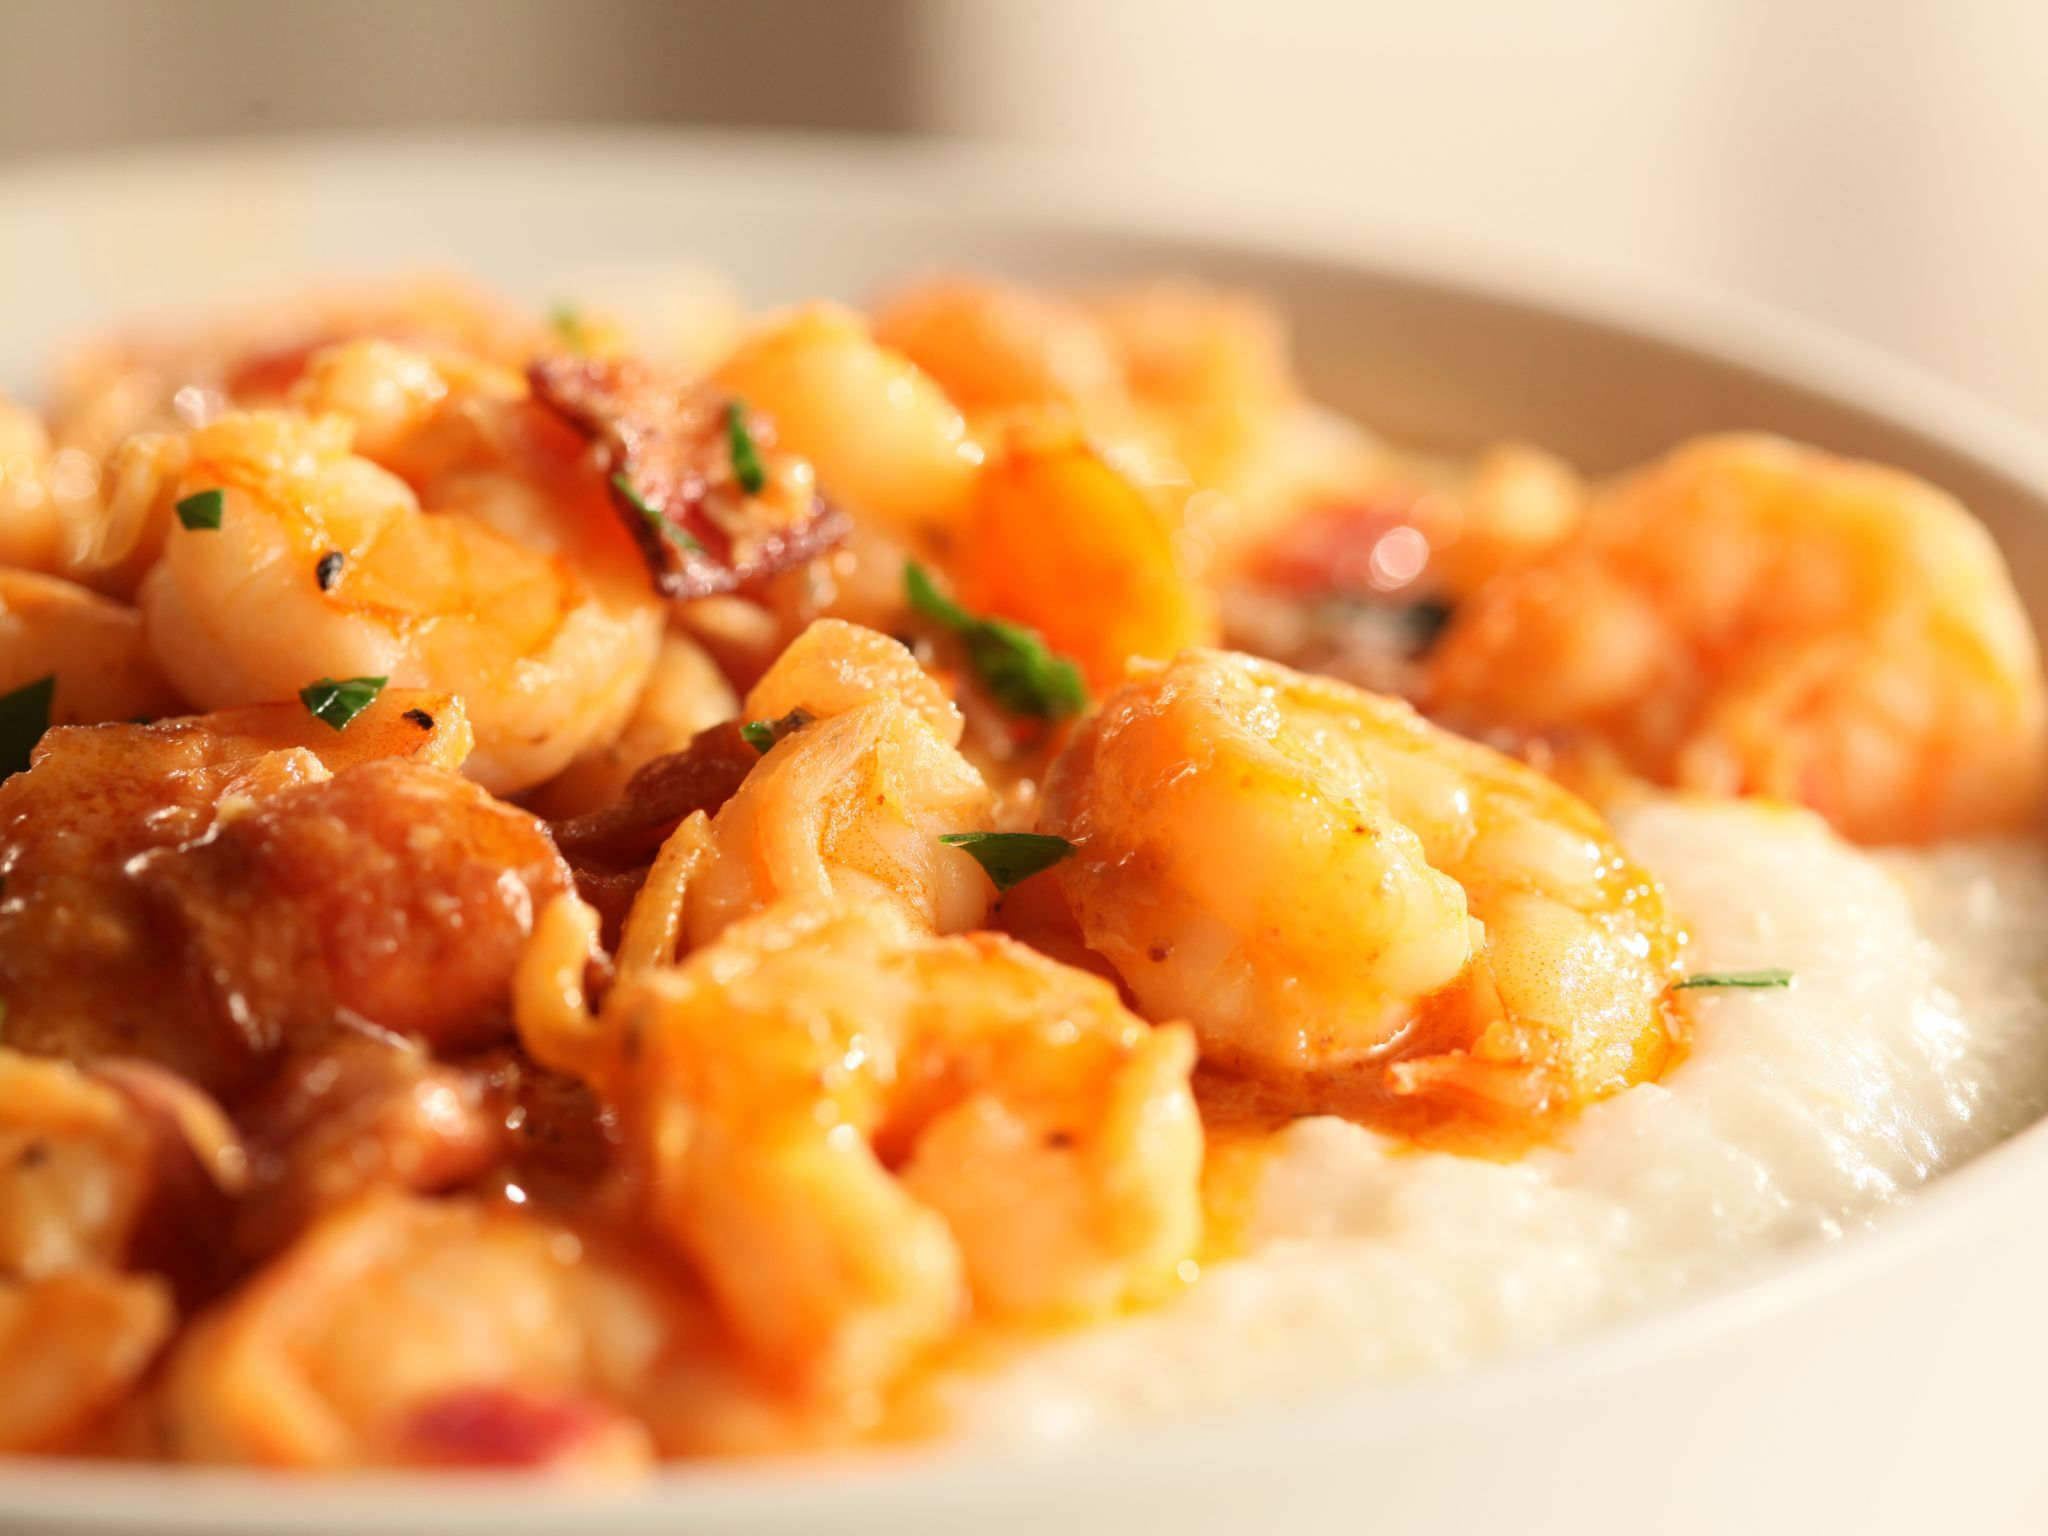 Check out shrimp and grits its so easy to make recipes food shrimp and grits forumfinder Image collections